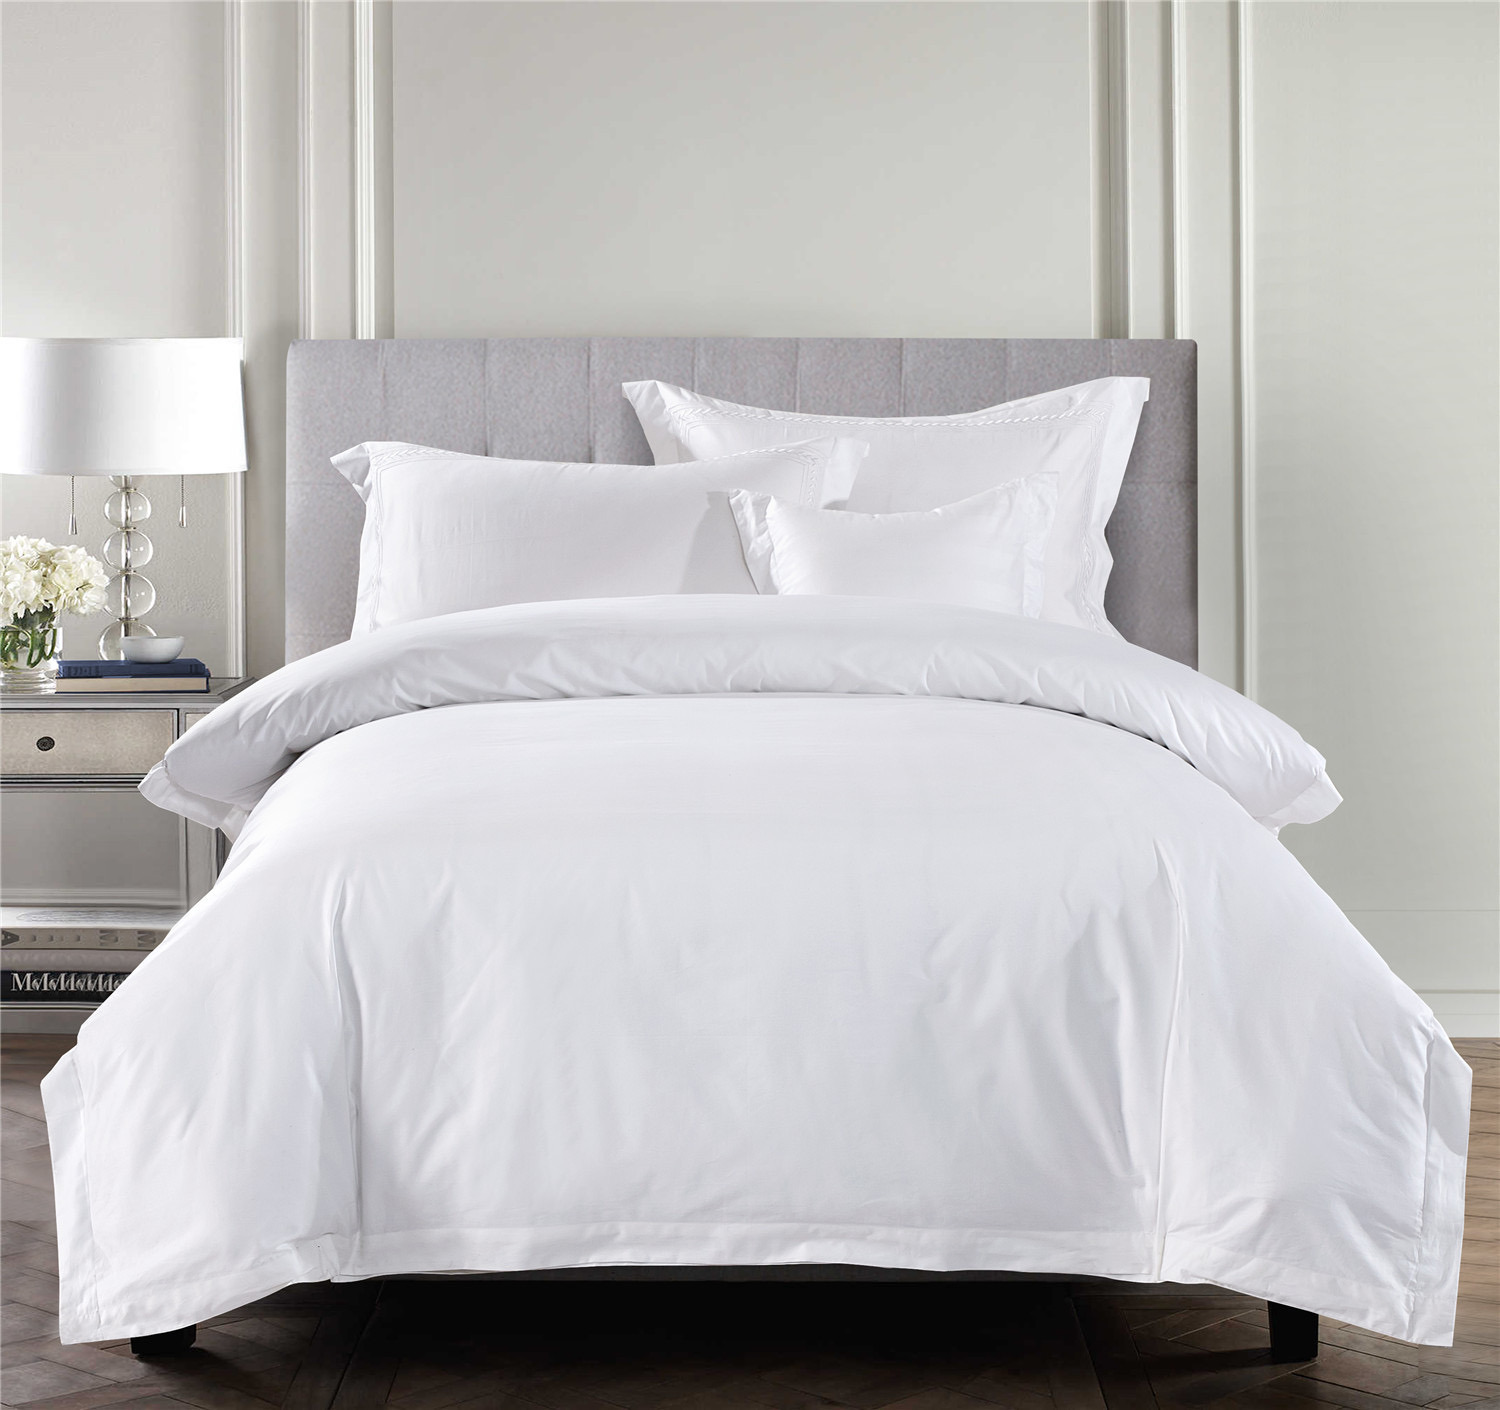 China 100 Cotton Satin Fabric 300tc White Bed Sheet Bedding Set Wholesale Hotel Home China Bedding Set And Hotel Linen Price